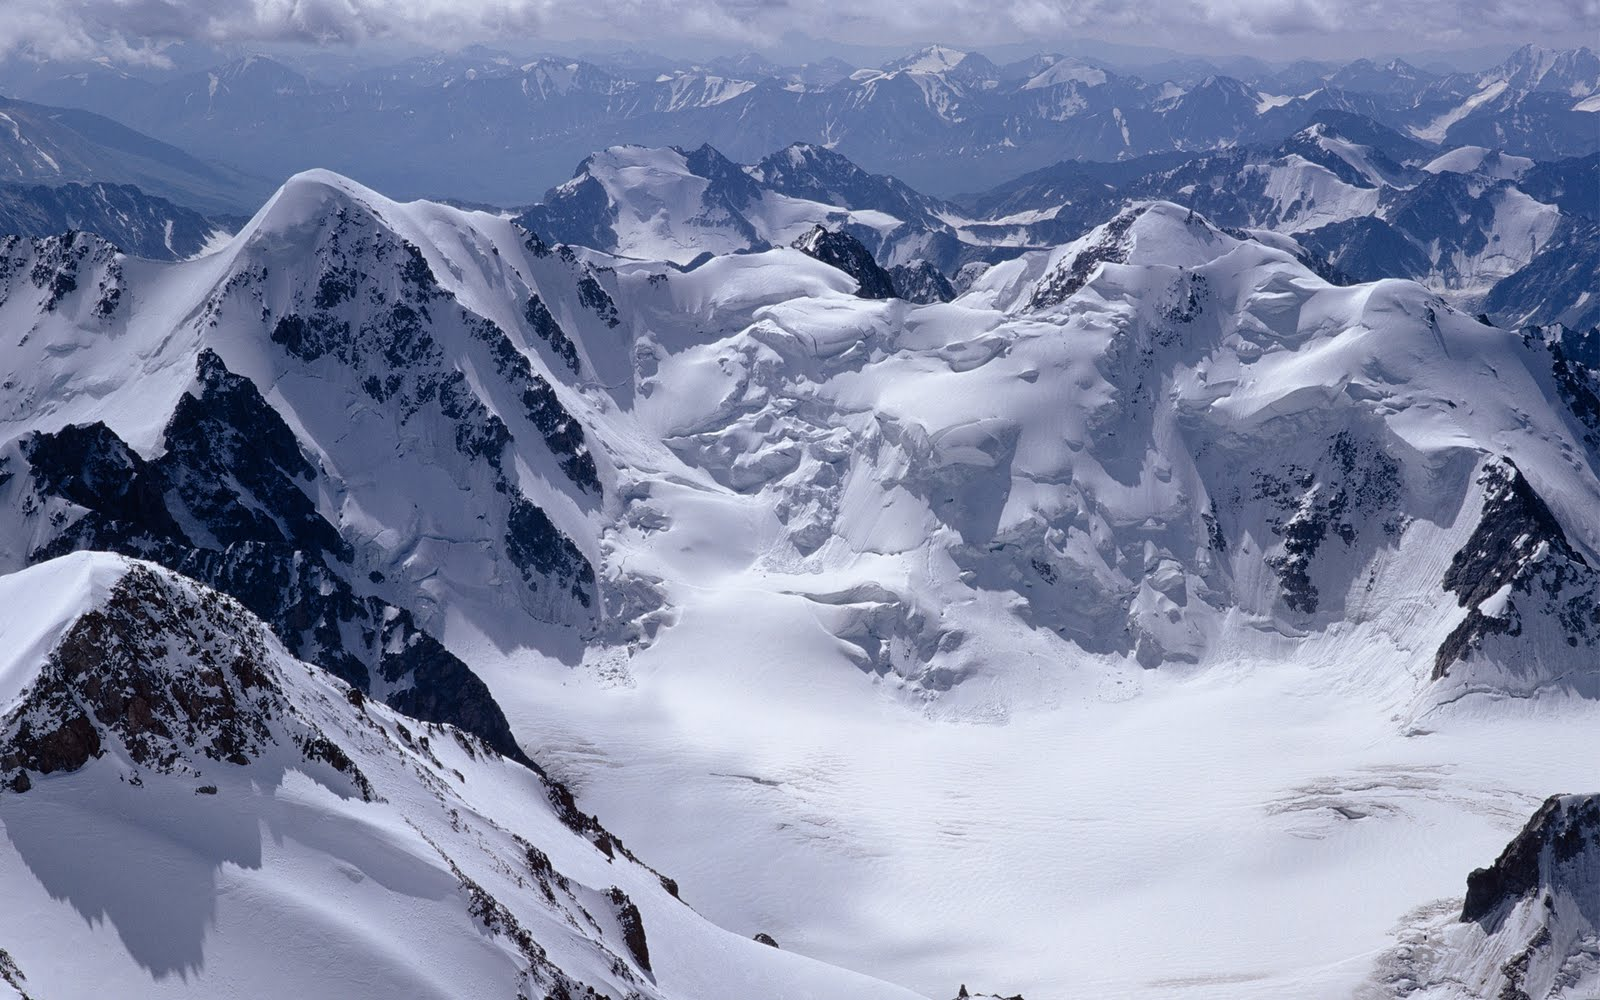 HD Acer Wallpaper here you can see Snow Mountain HD Acer Wallpaper 1600x1000